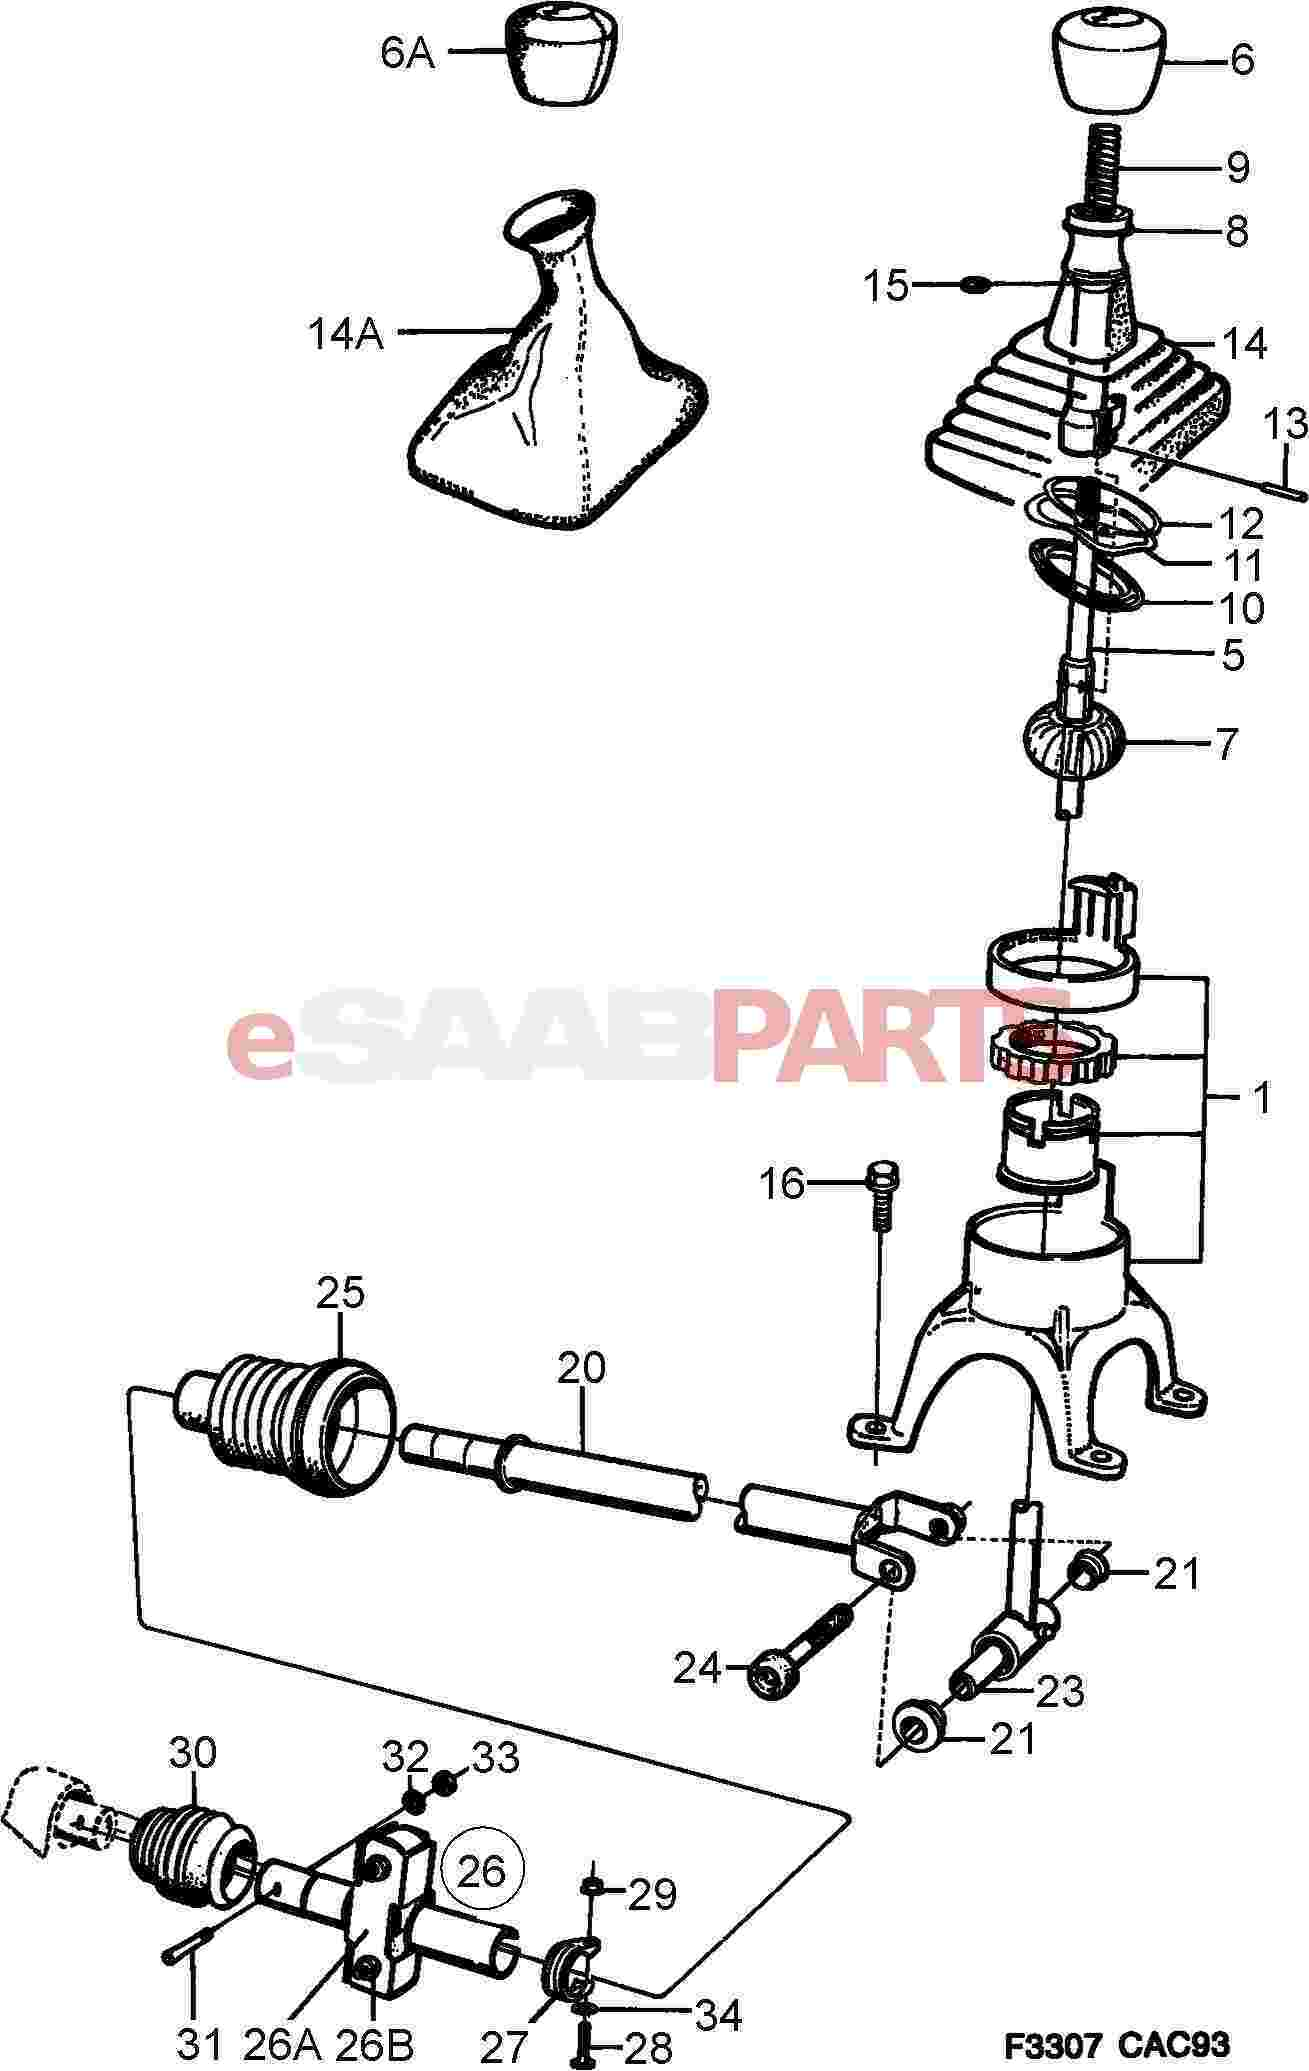 Saab 900s Parts Diagram Shifter Automatic. Saab. Auto